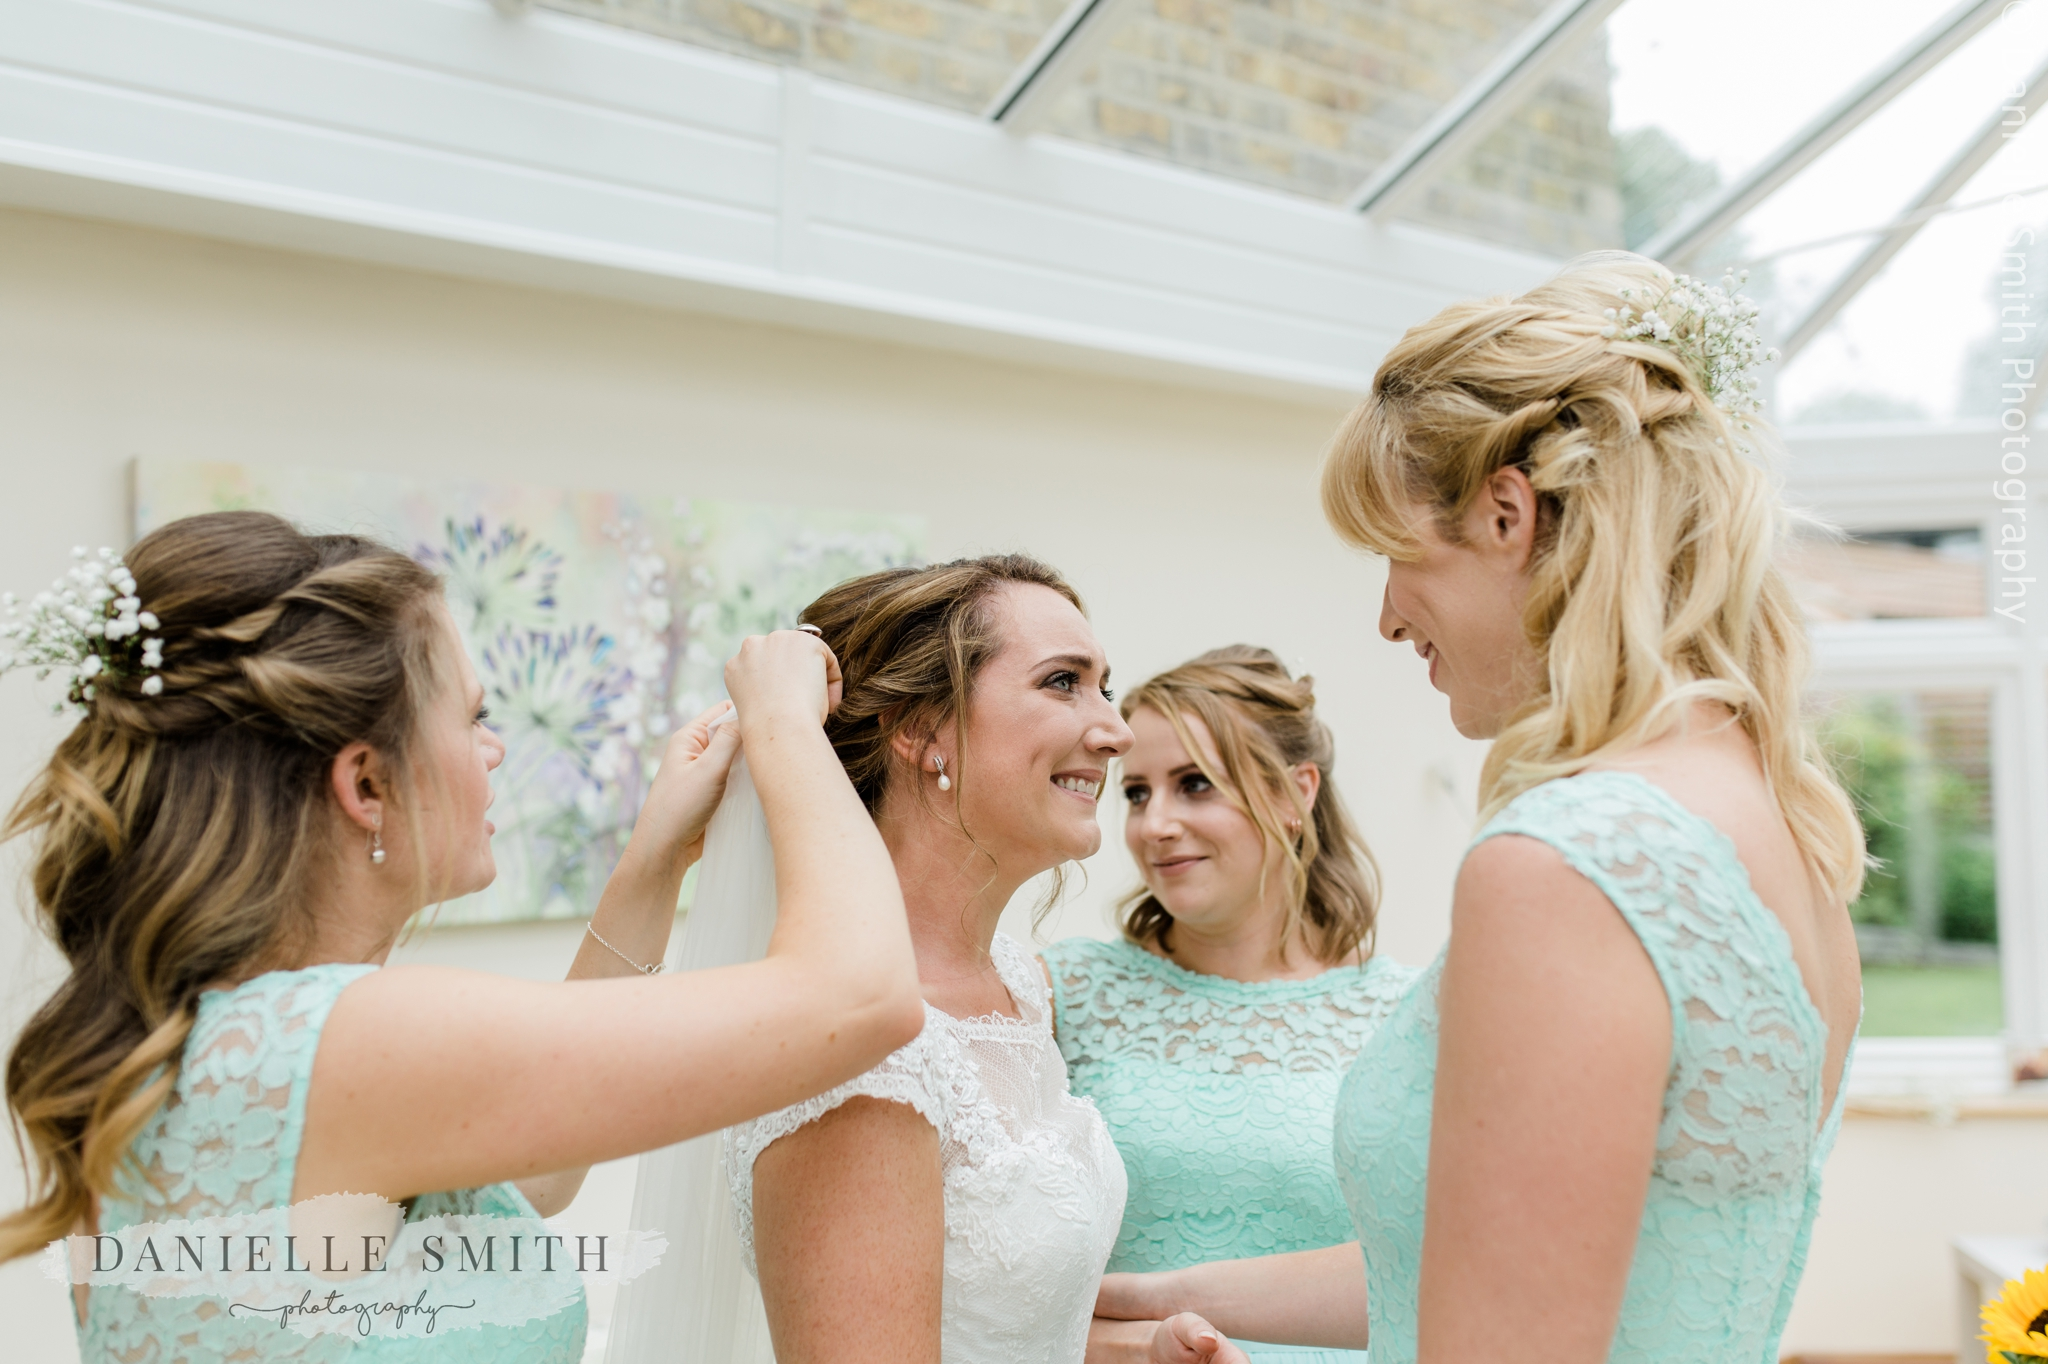 bride teary as bridesmaids help with finishing touches